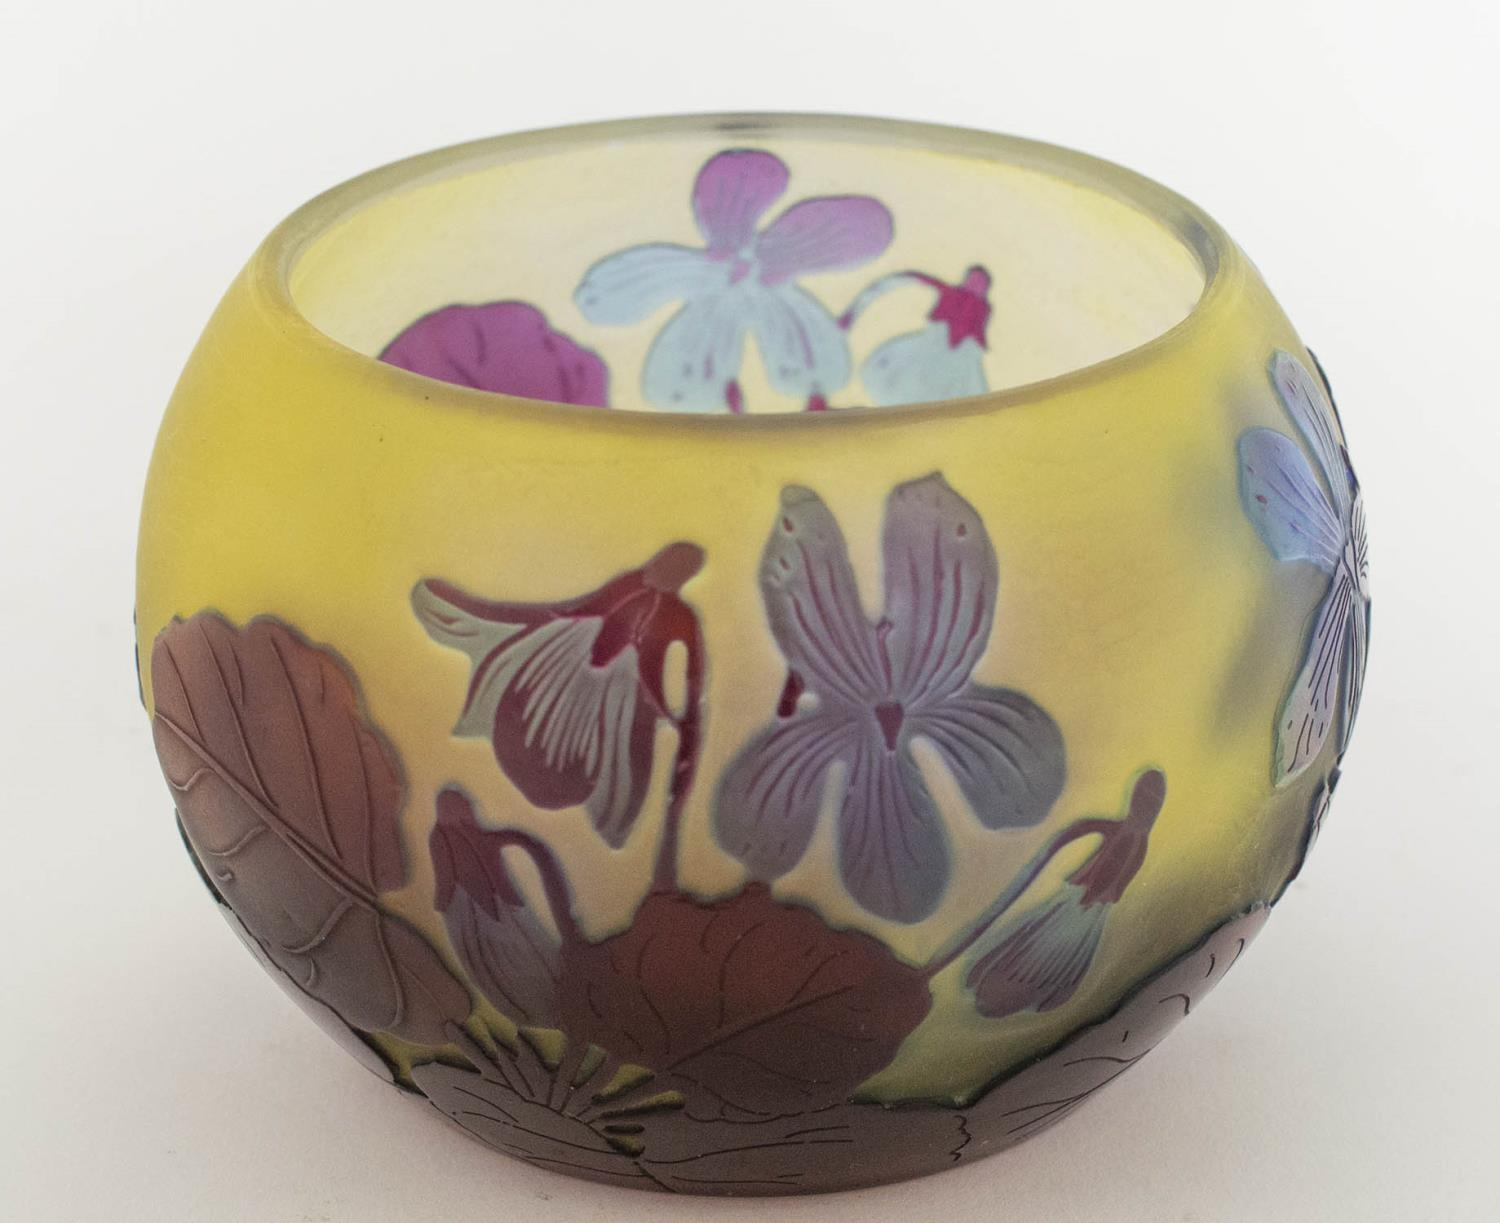 BOWL, Emile Galle Cameo glass, having subtle light blue and amethyst tones with foliate pattern, 8cm - Image 4 of 6